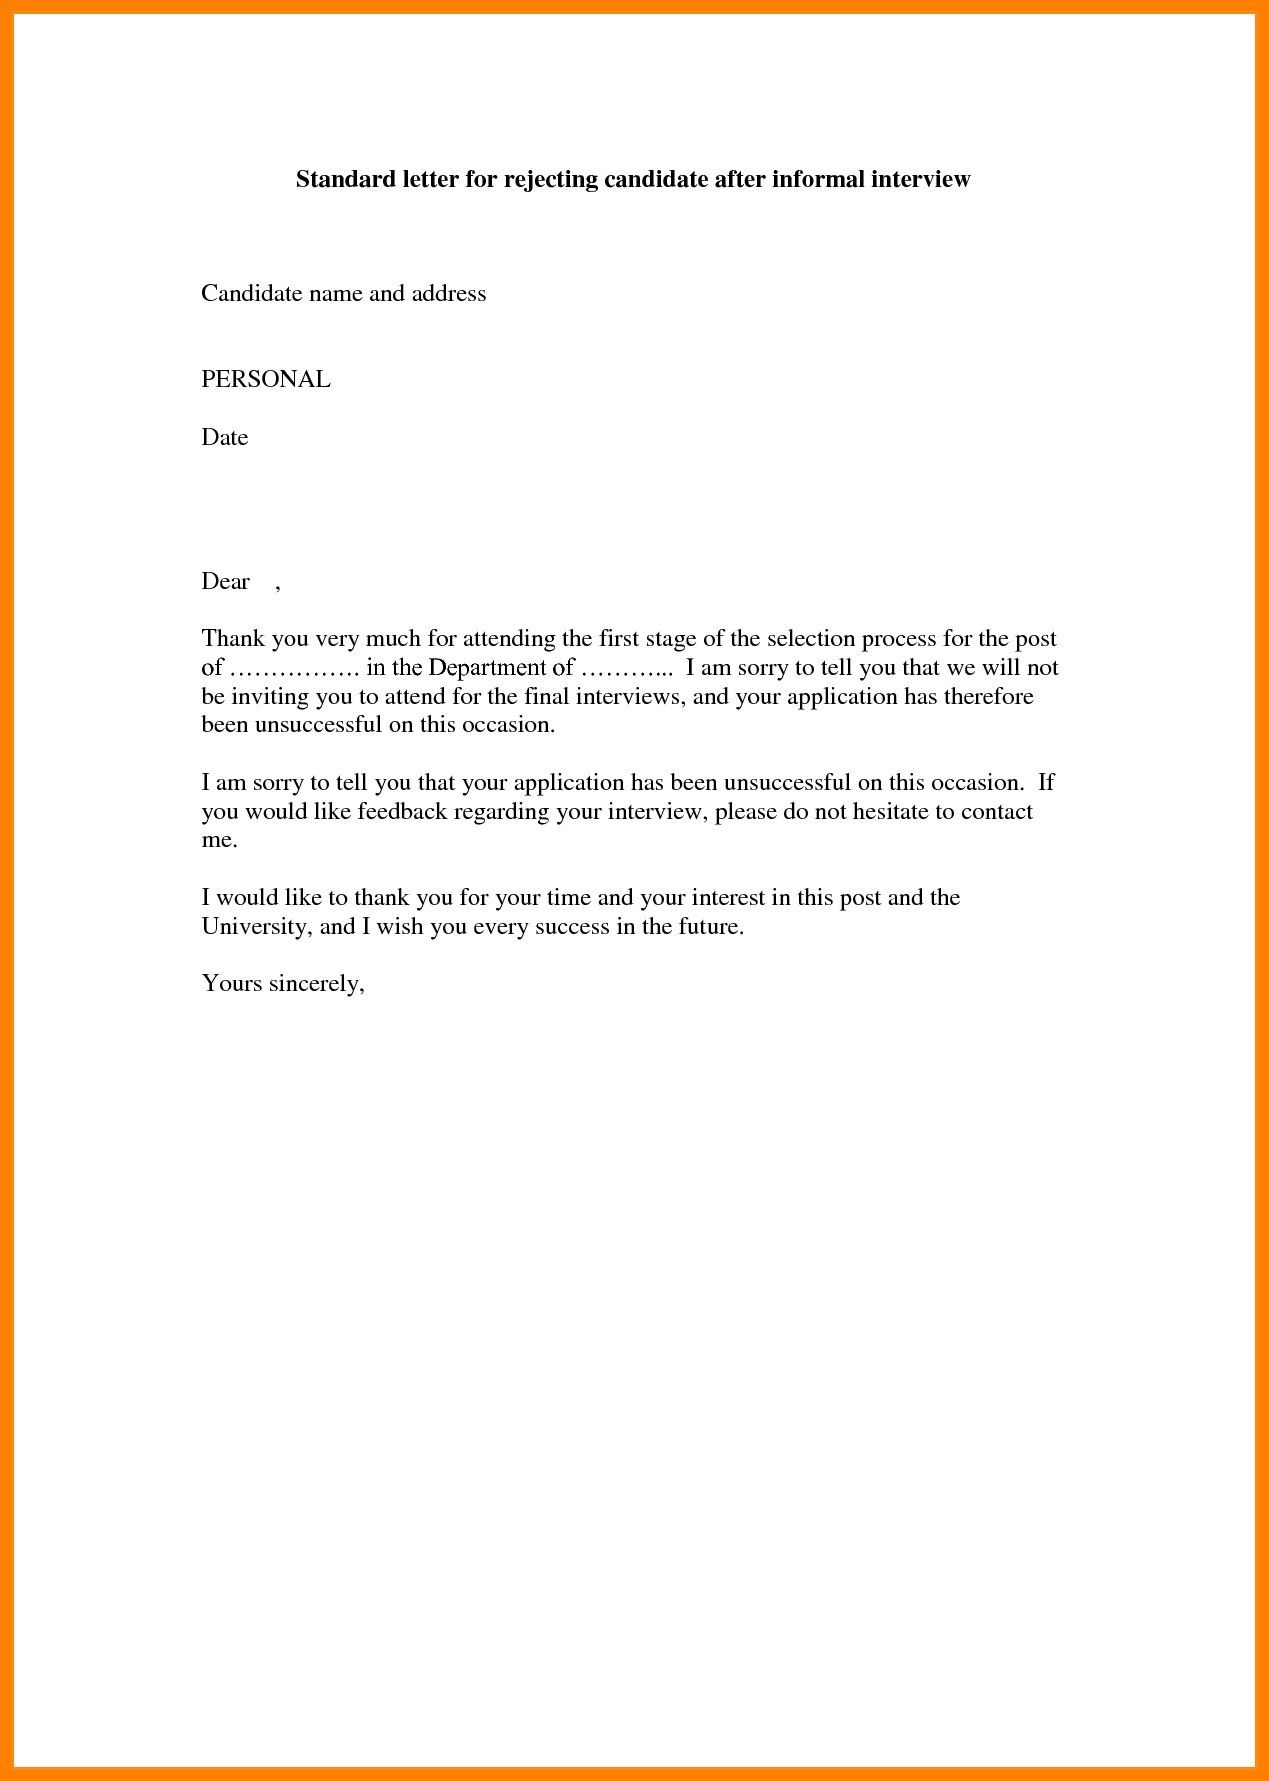 Download Best Of Thank You Letter After Accepting A Job Offer Lettersample Letterformat Resumesample Thank You Letter Job Cover Letter Offer And Acceptance